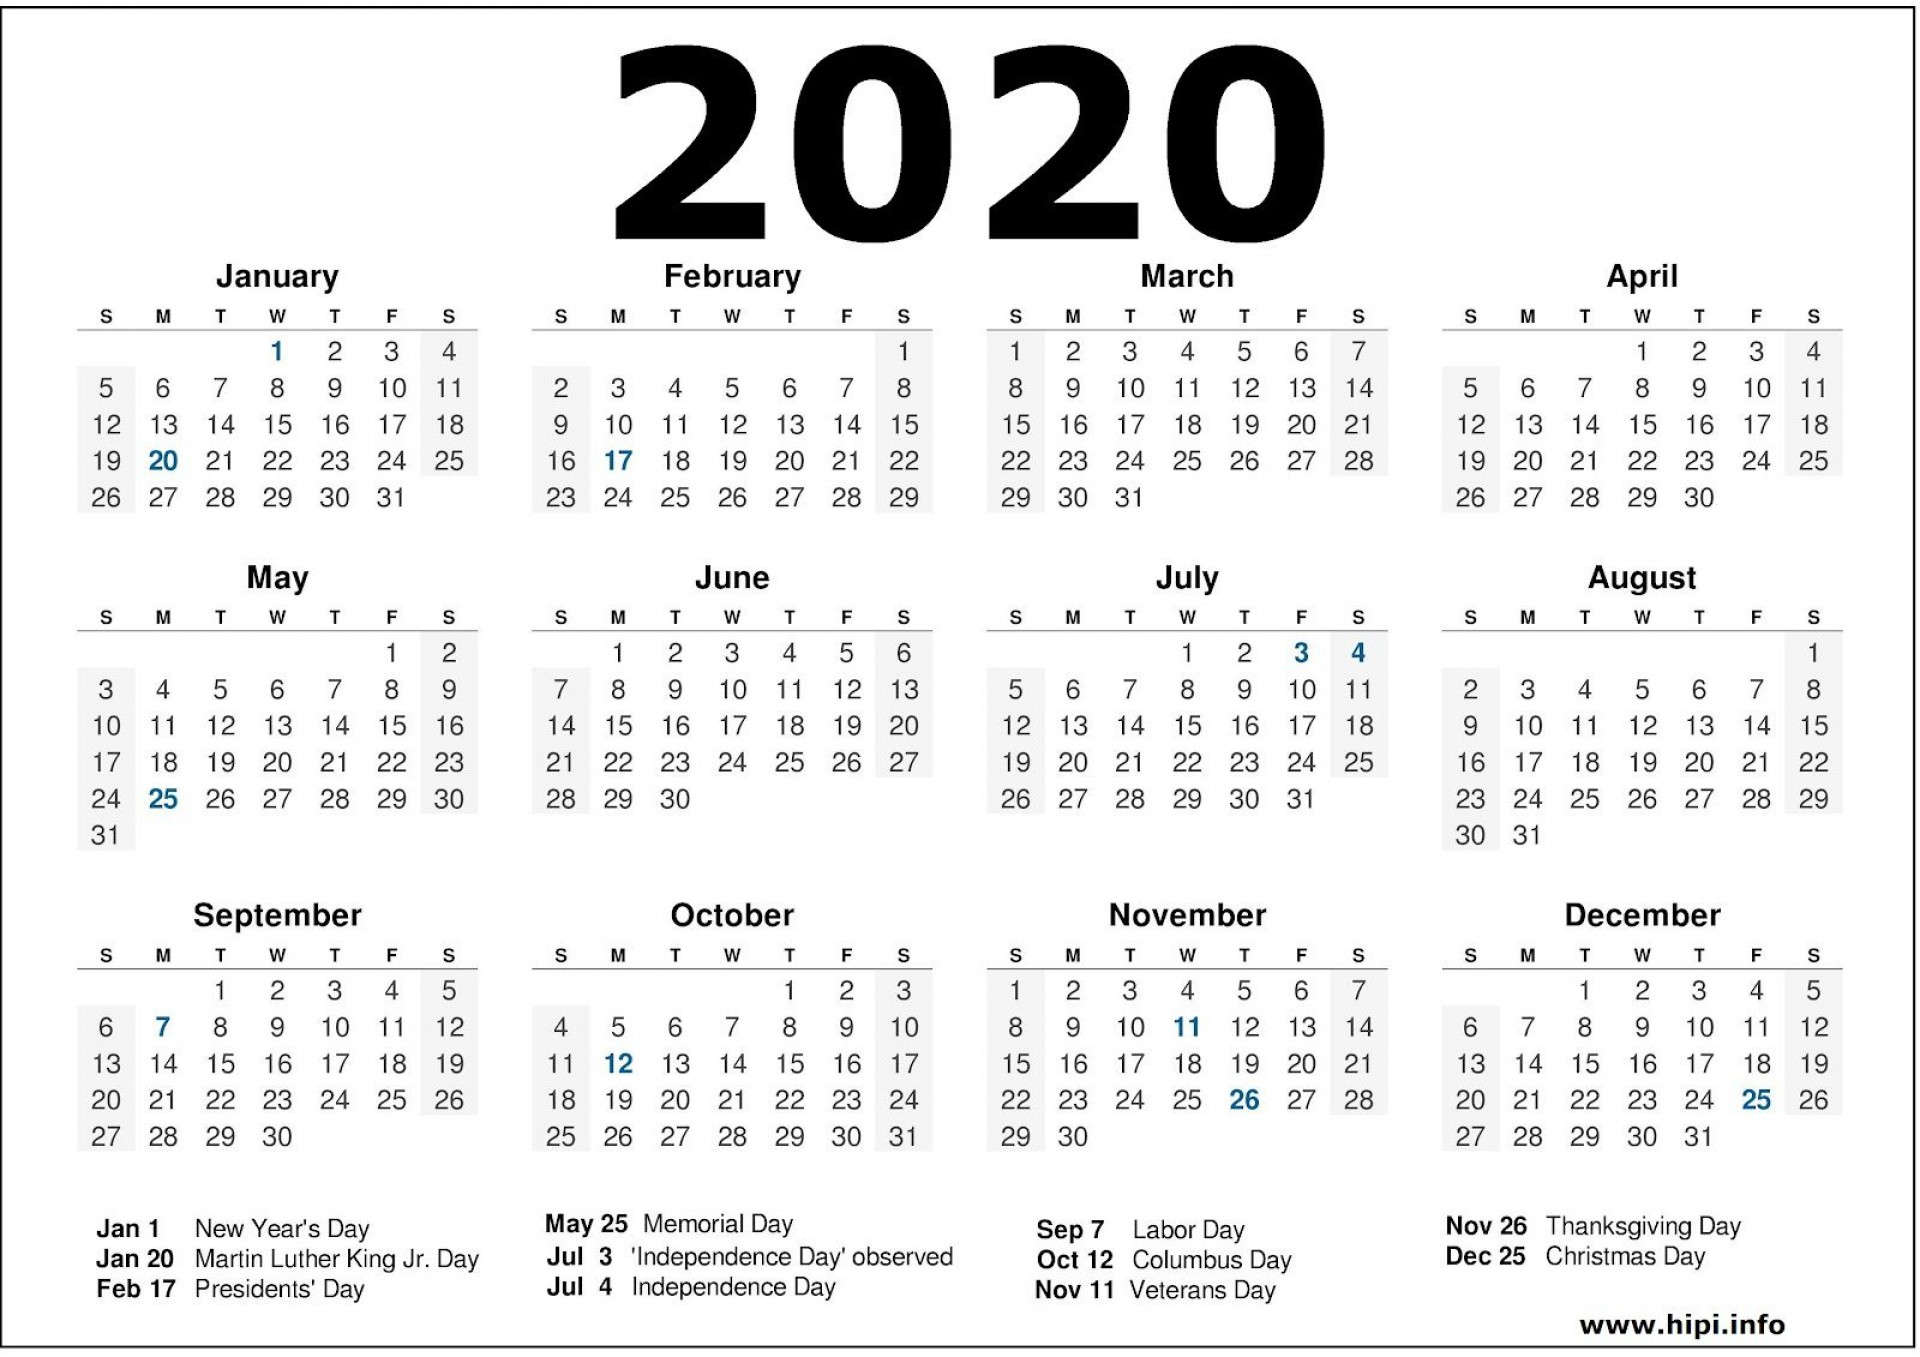 003 Awesome Calendar Template Free Download Image  2020 Powerpoint Table Design 2019 Malaysia1920